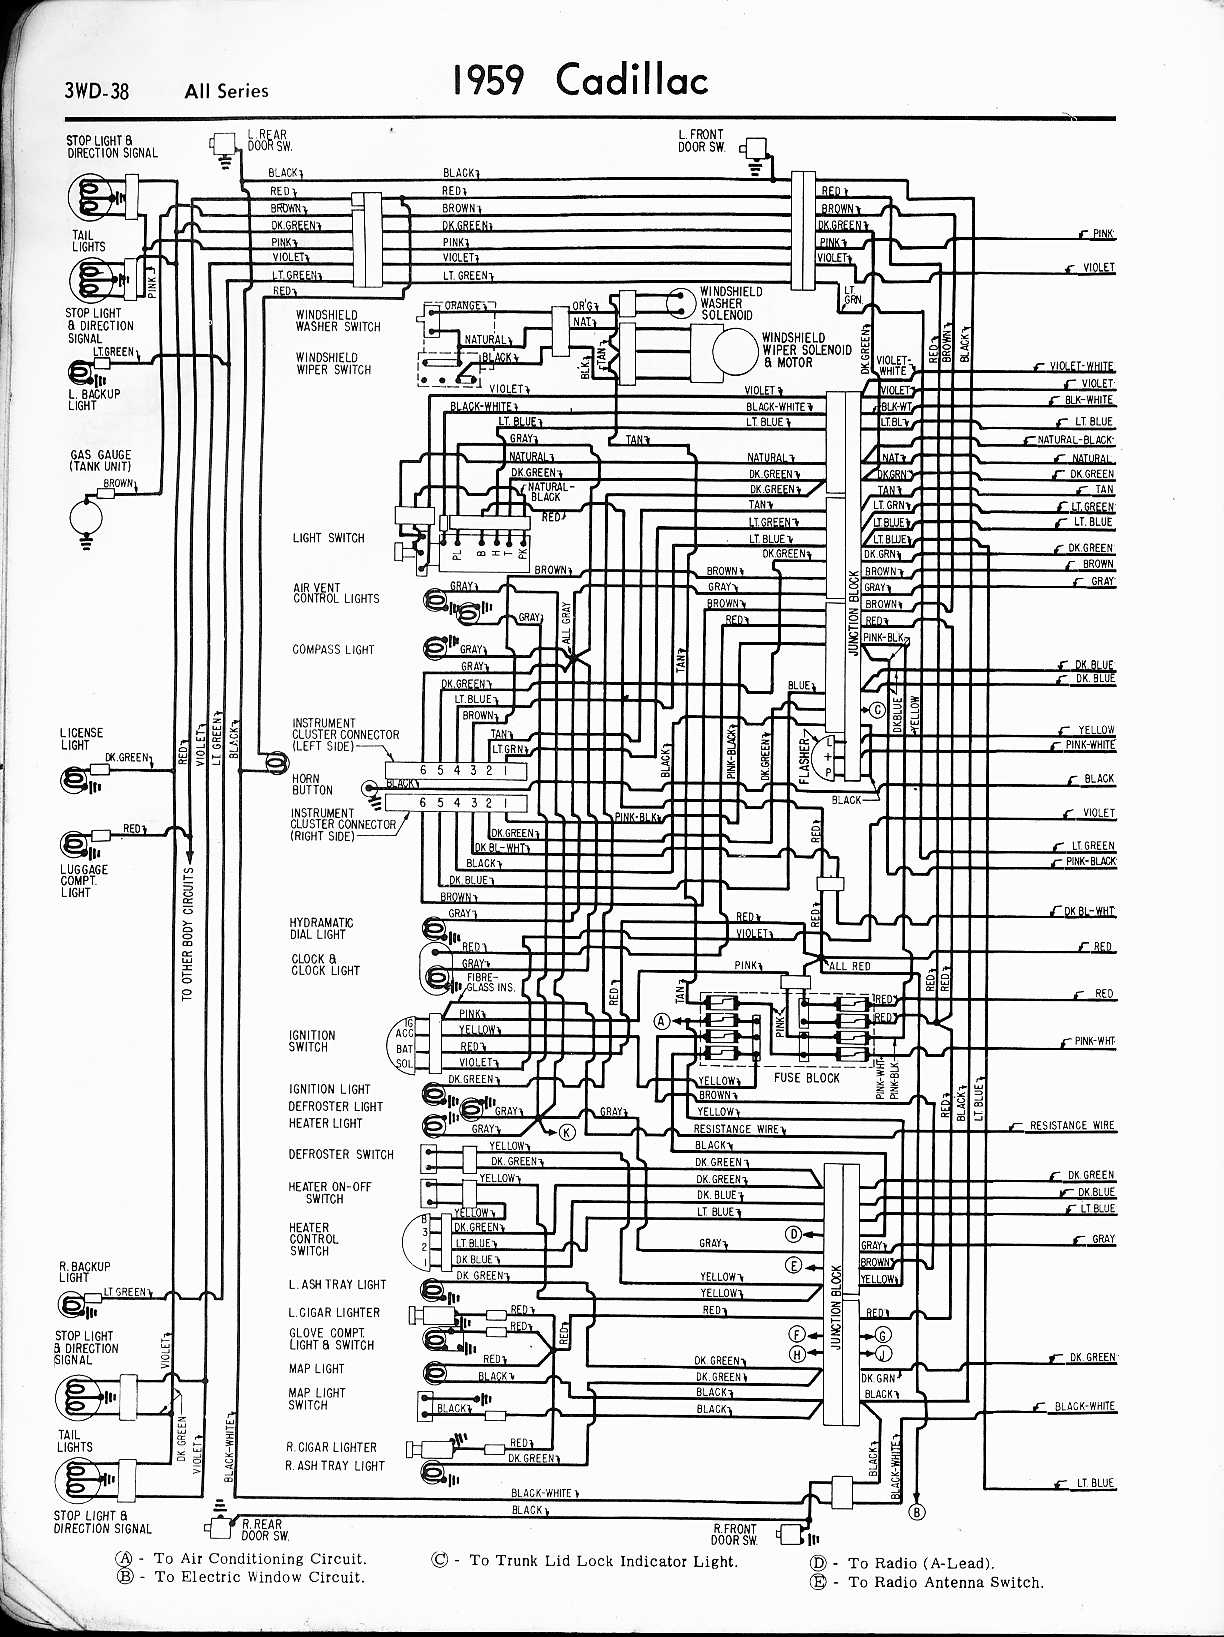 cadillac wiring diagrams: 1957-1965 cadillac 1963 windows wiring diagram all about diagrams #11